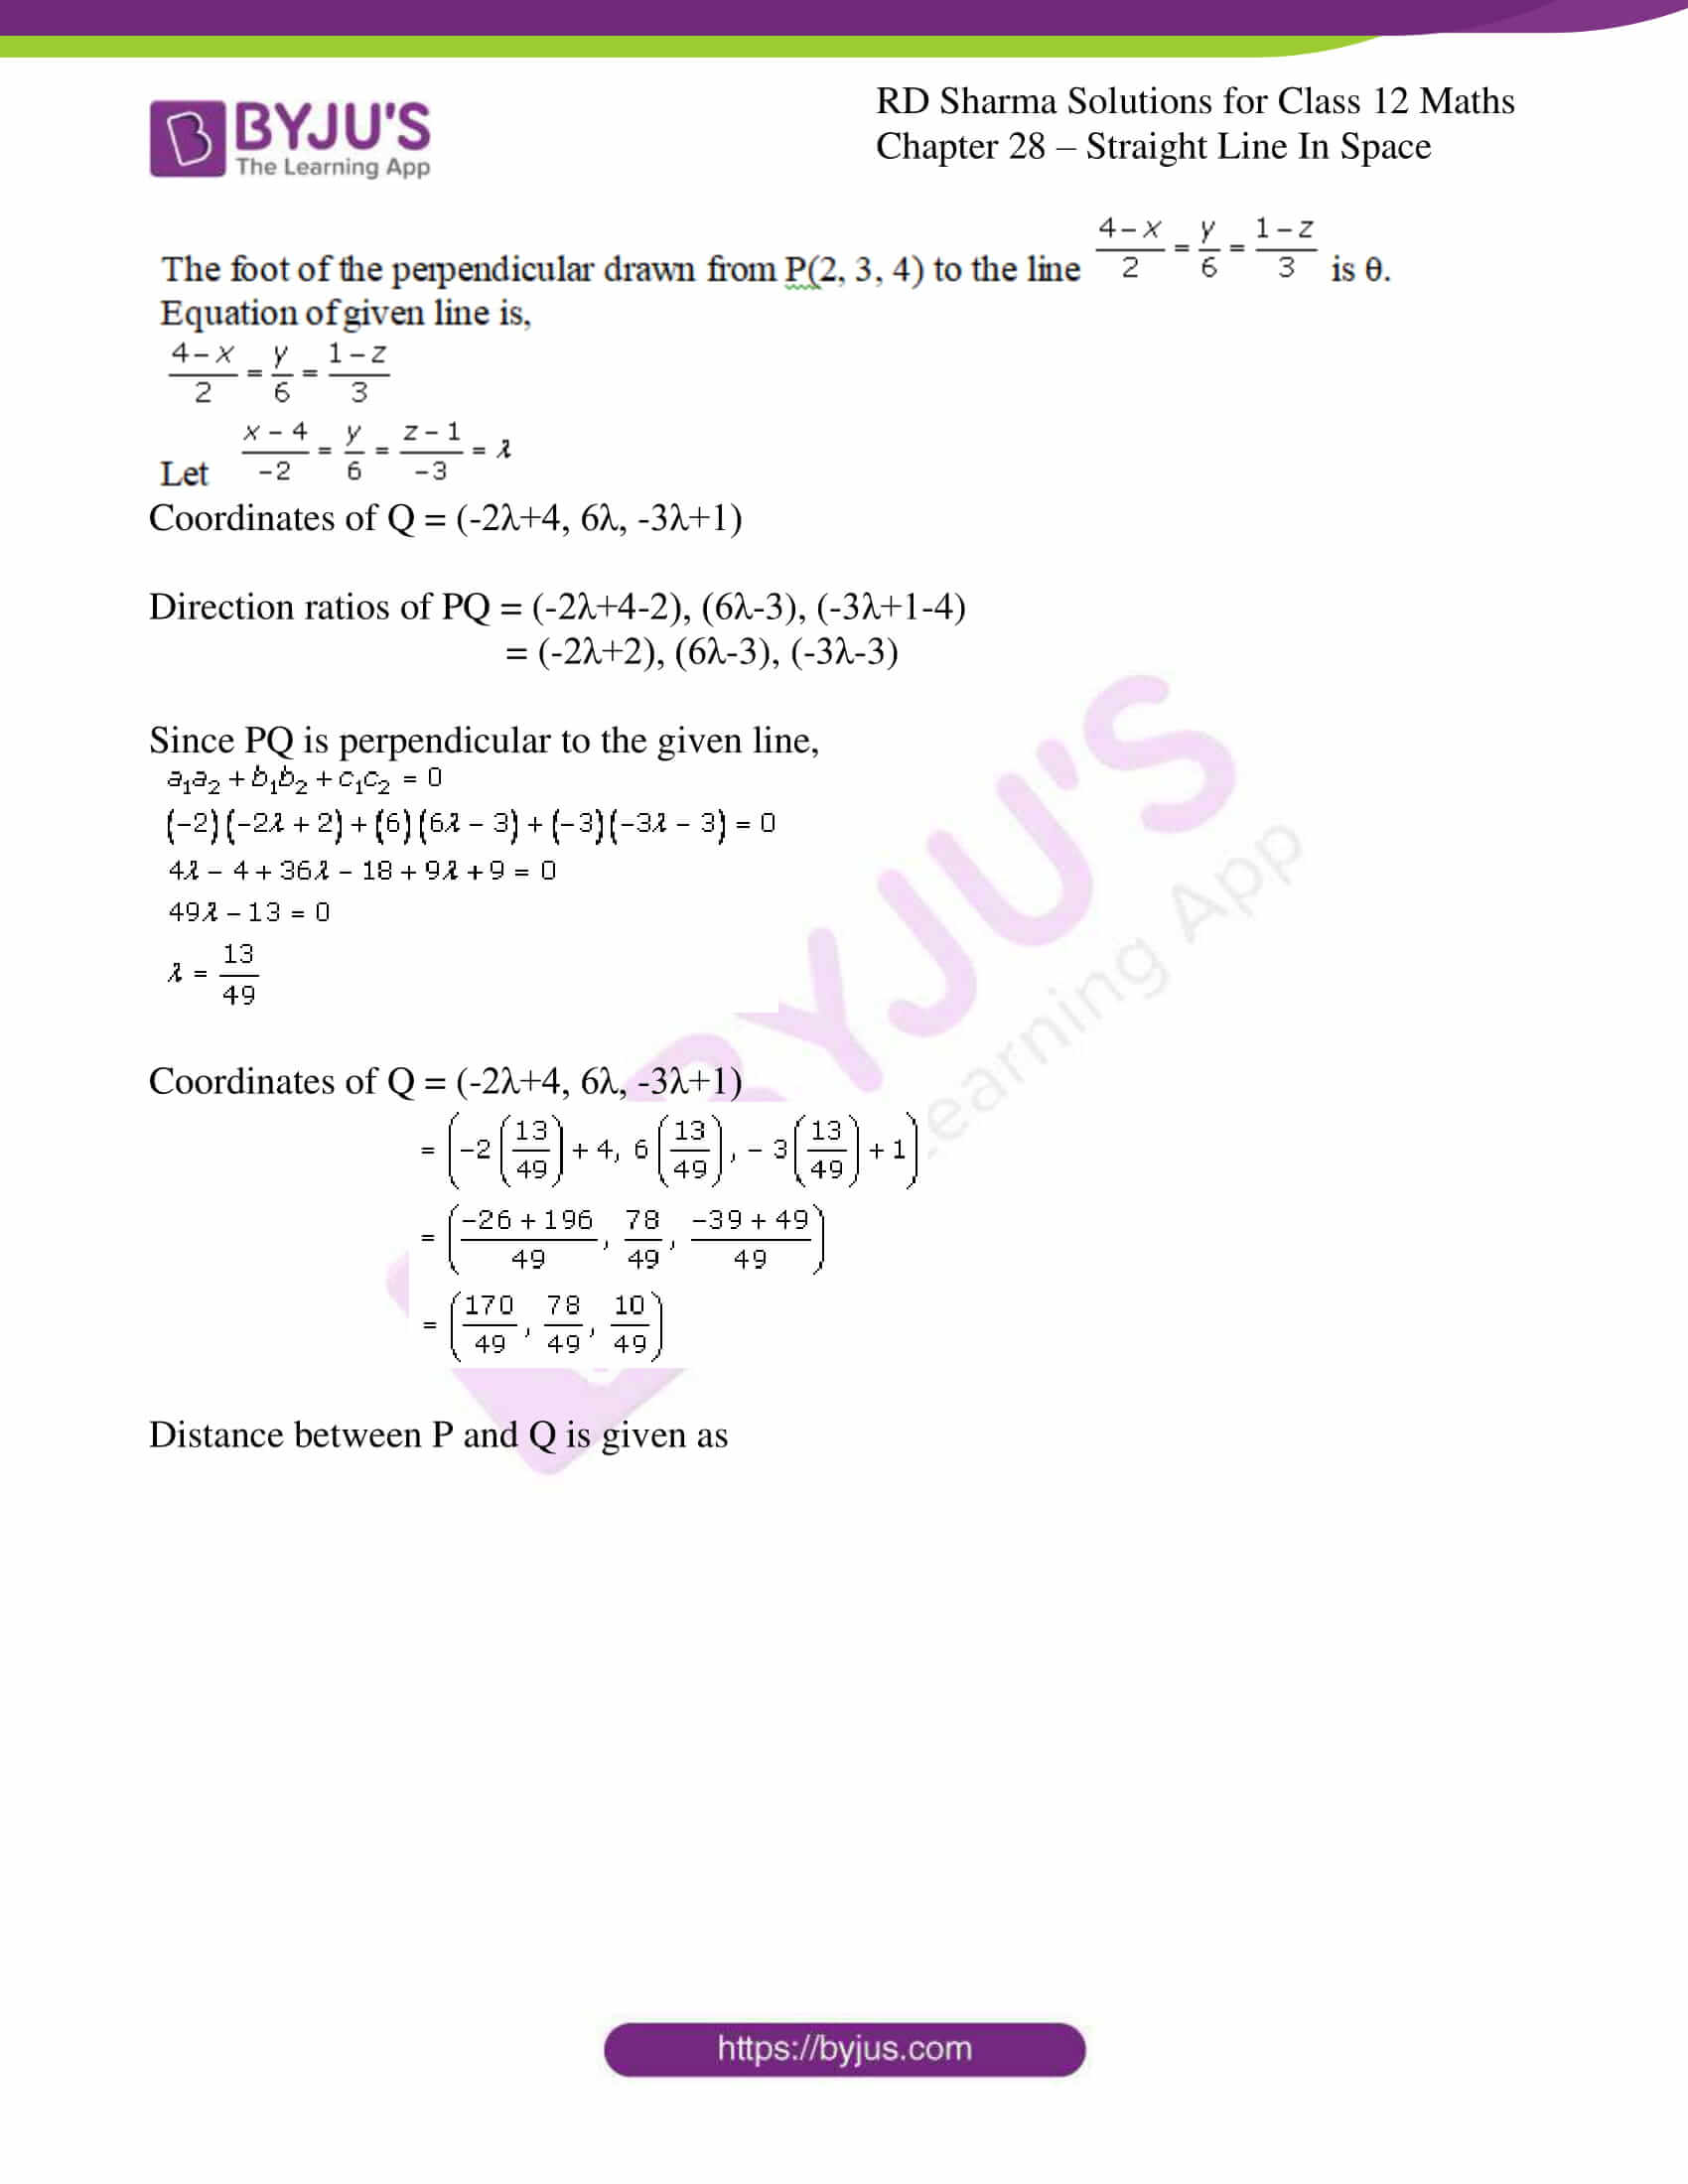 rd sharma class 12 solution for maths chapter 28 ex 4 5